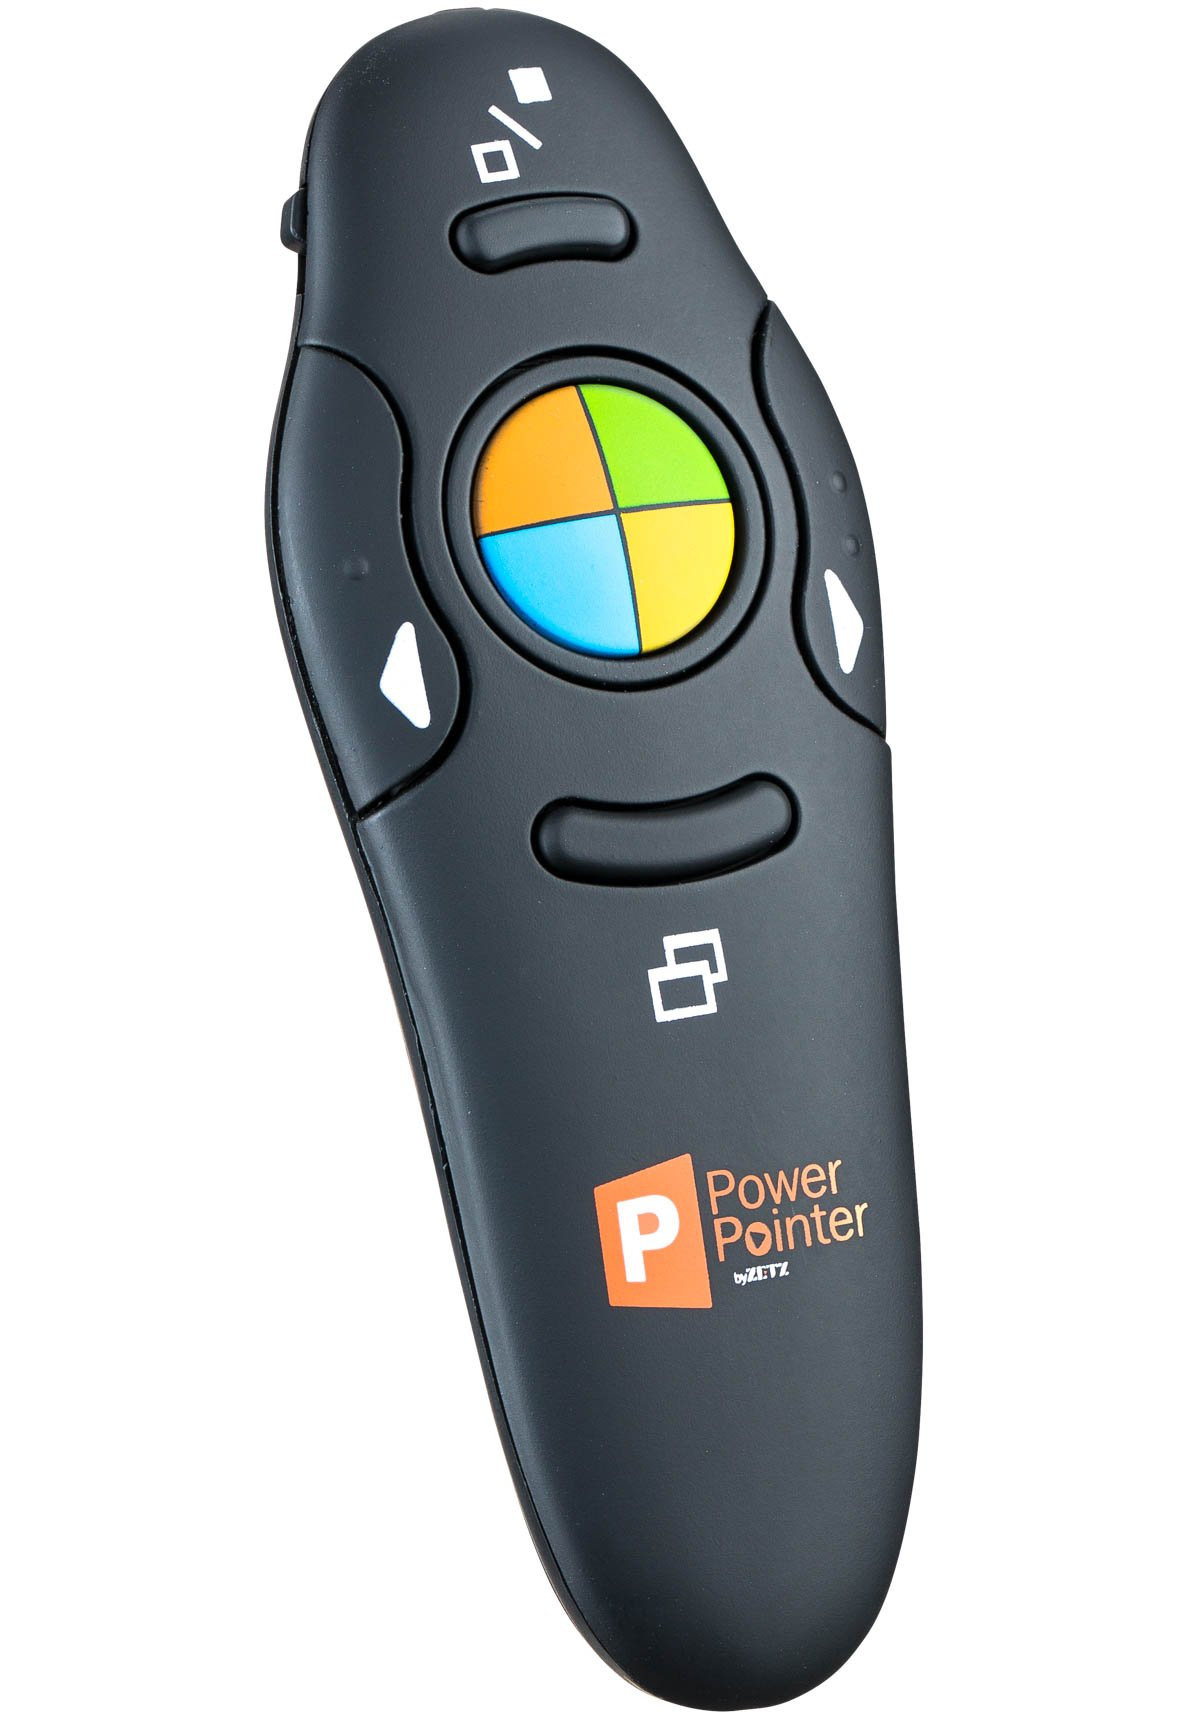 ZETZ Wireless Presenter Remote Control With USB & Laser Pointer | Powerful & Ergonomic PPT Clicker Easy To Use | For Microsoft Power Point Presentations, Excel & Interaction With Crowd by Zetz